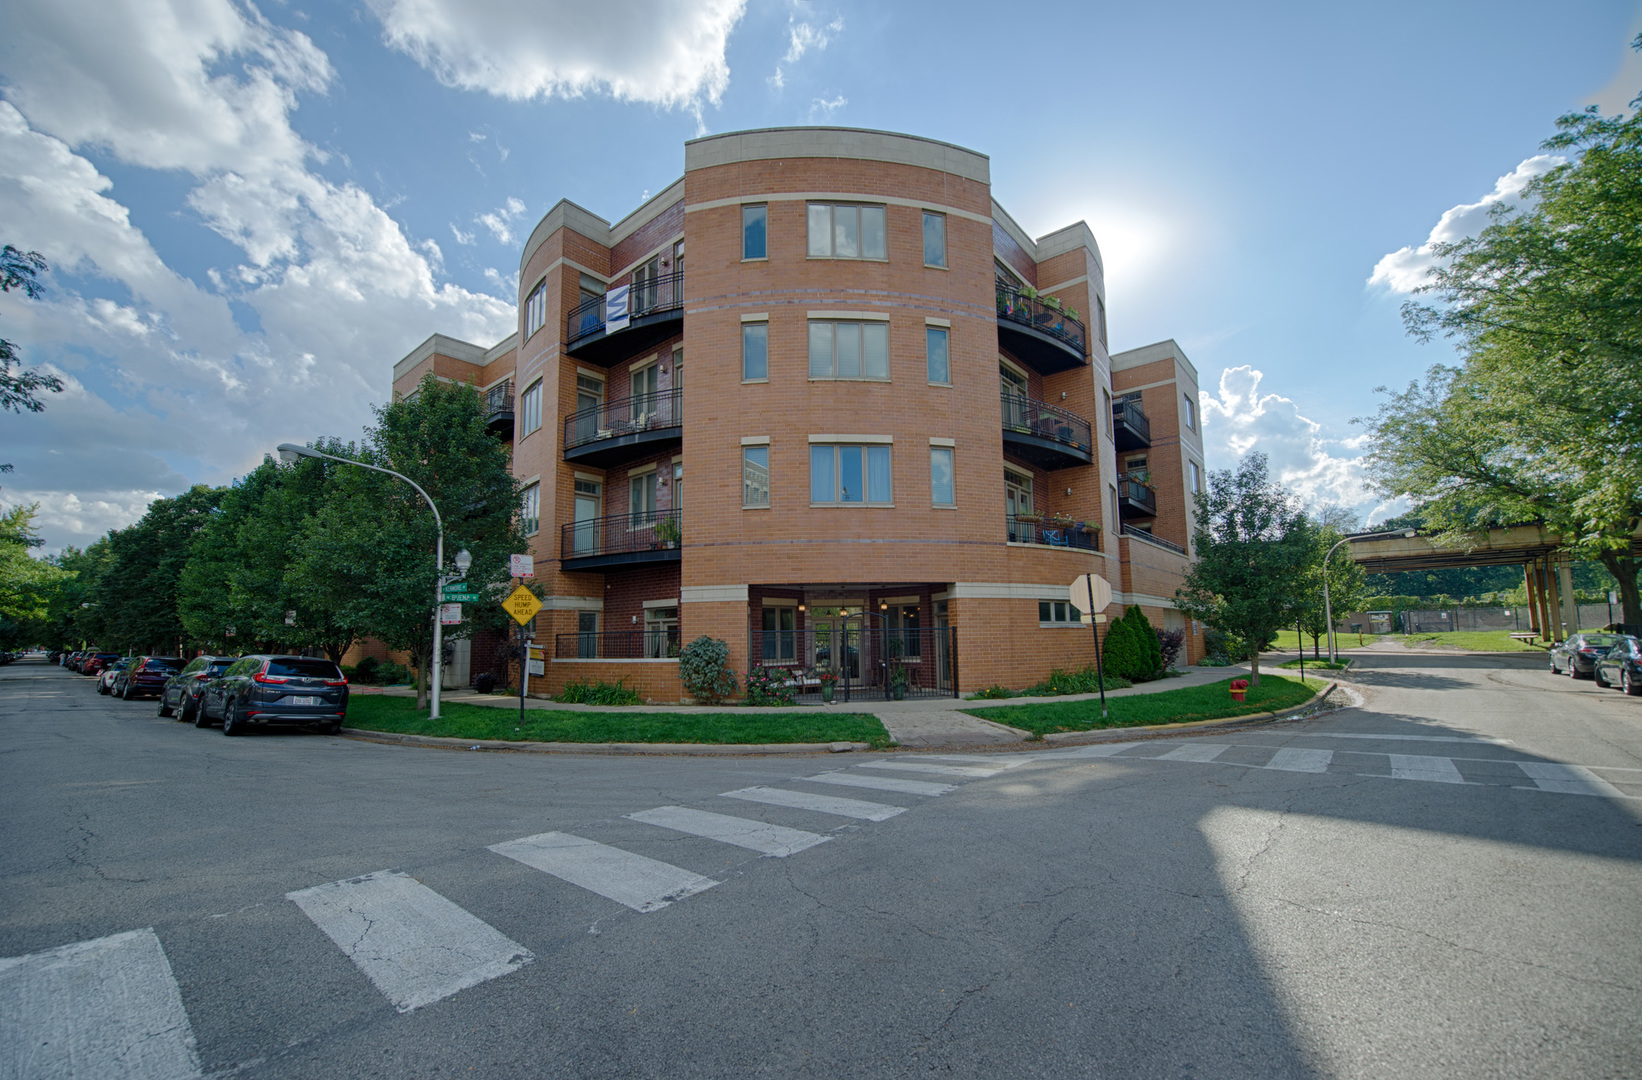 4150 Kenmore Unit Unit 101 ,Chicago, Illinois 60613